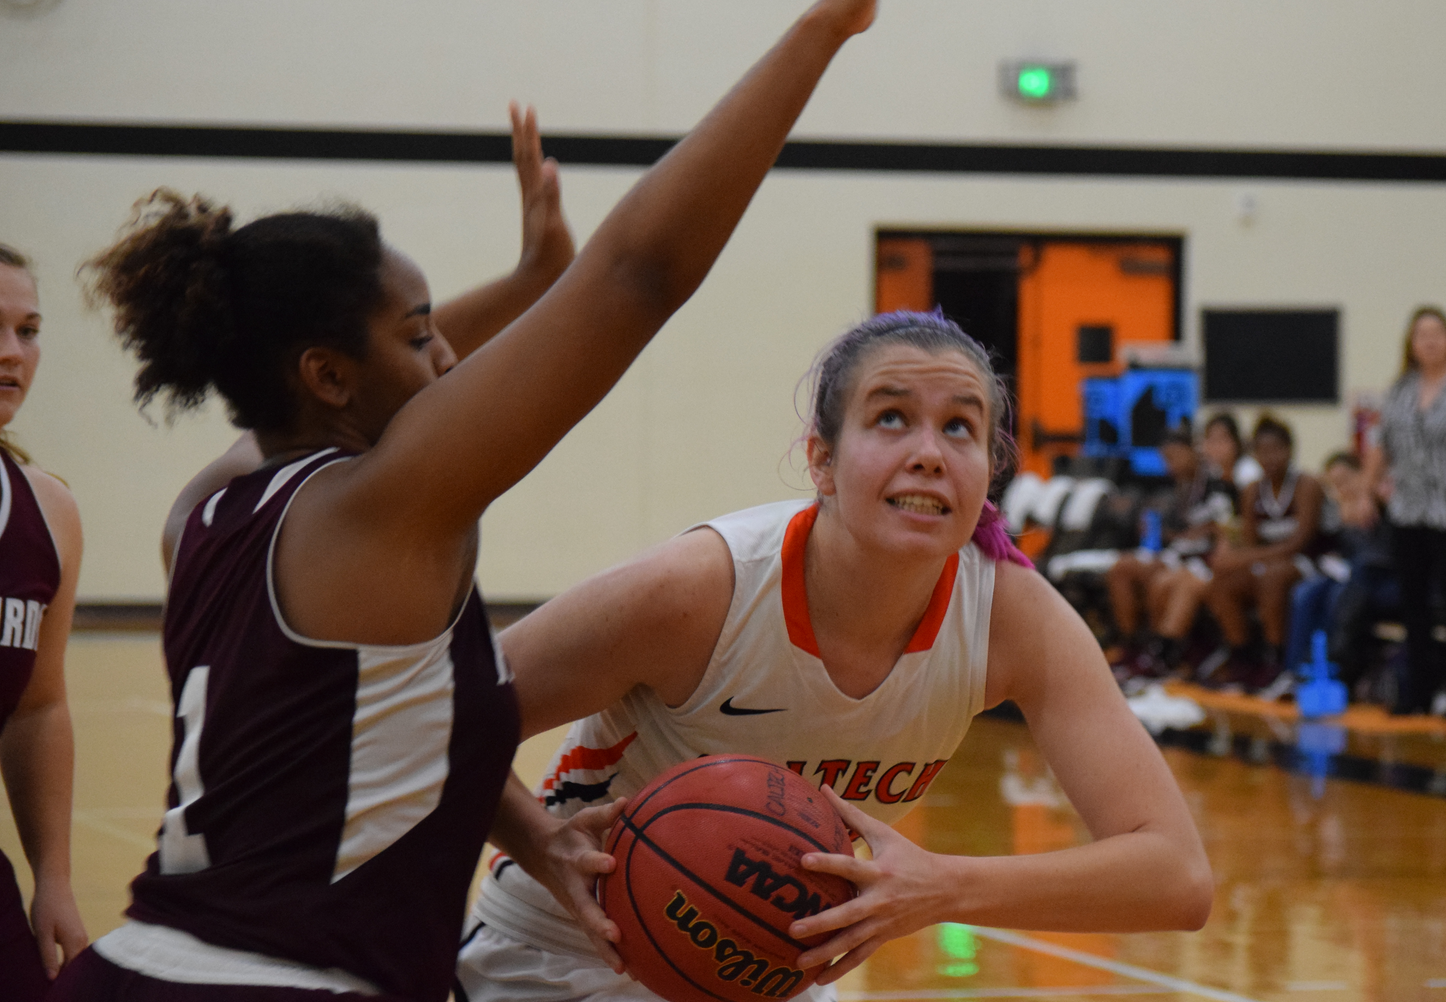 Lewis, Schemel Lead Women's Basketball to First Win of Season